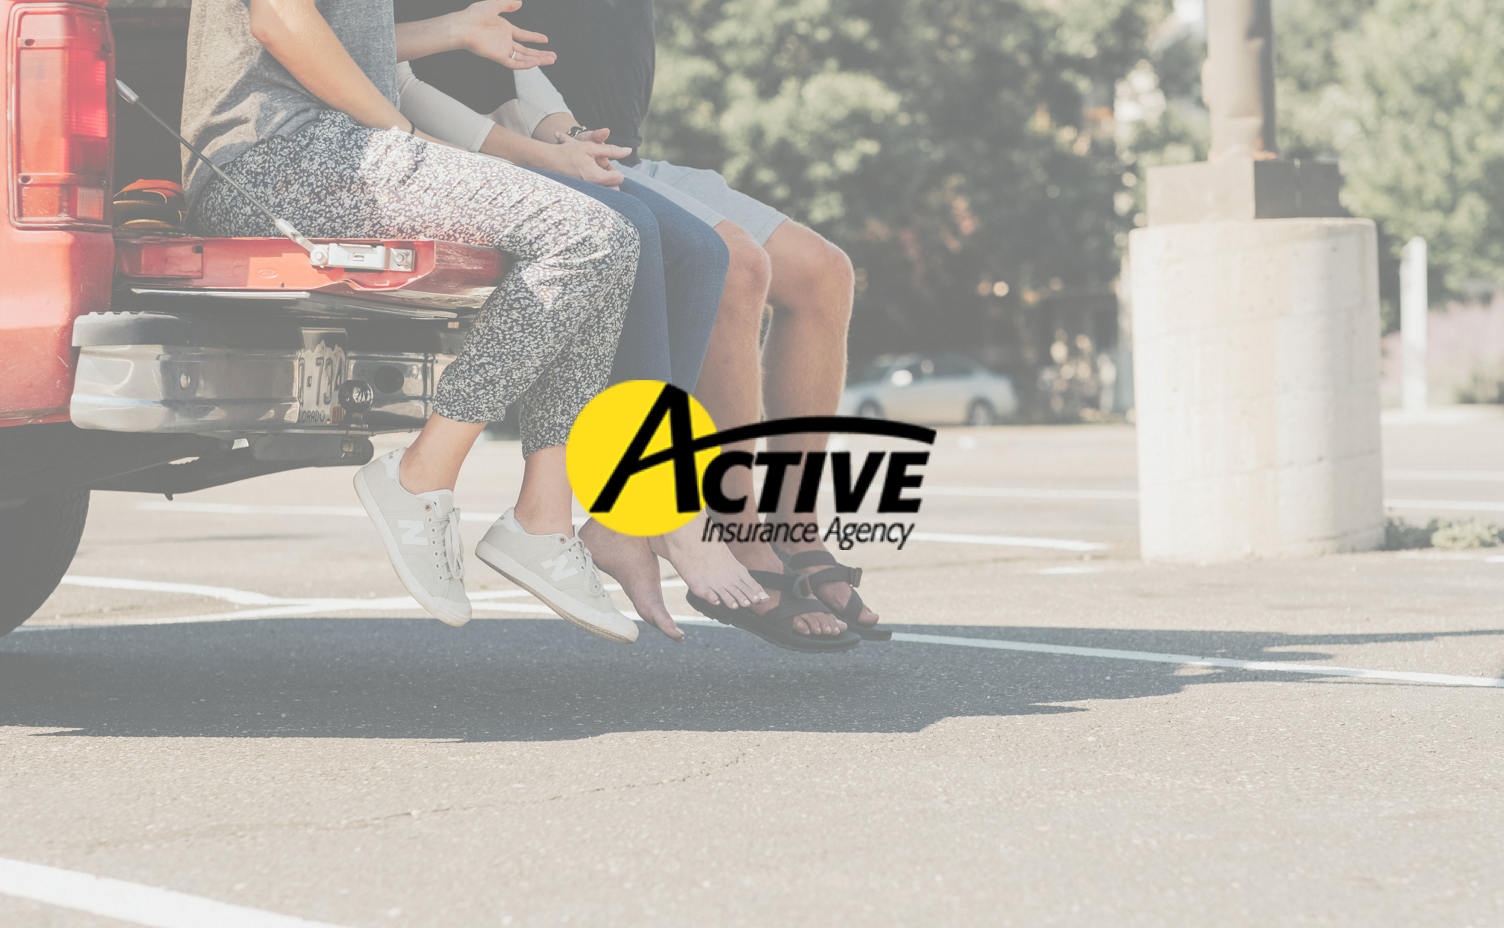 ACTIVE INSURANCE